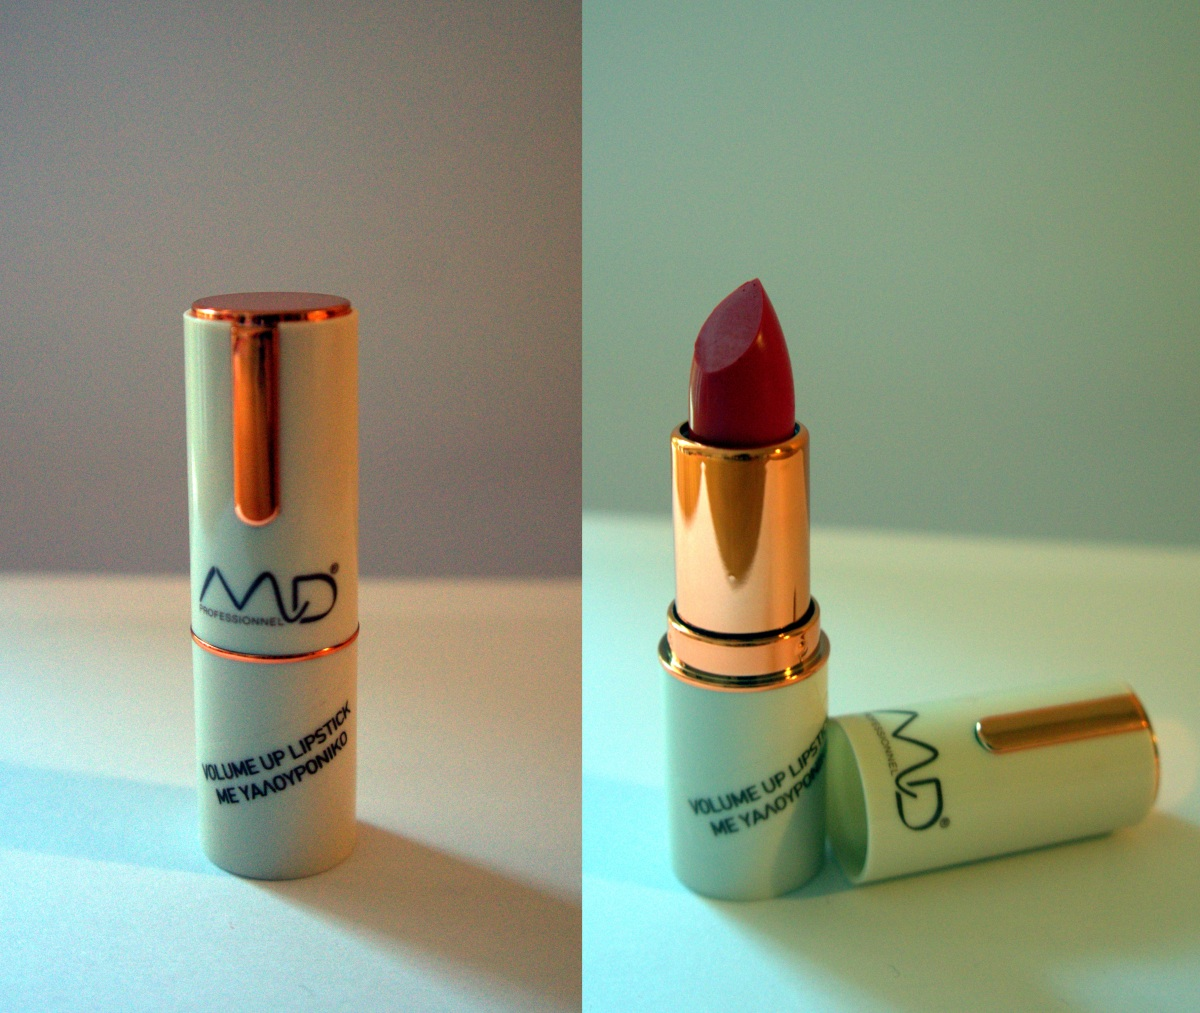 MD Professionnel Volume Lipstick (08): Reviews & Swatches